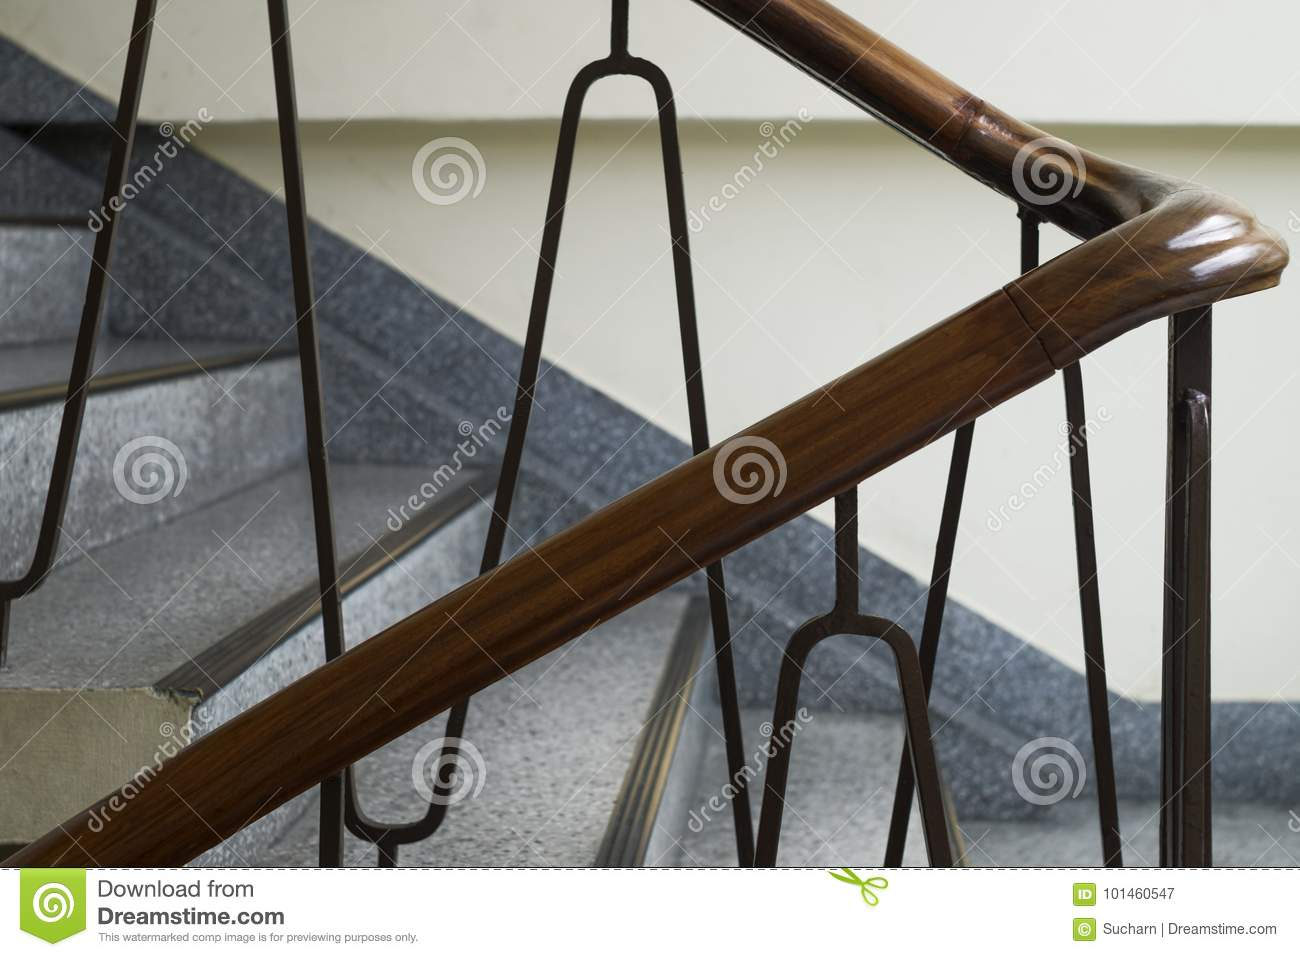 Close Up Shot Of Vintage Staircase In Minimal Style. Wooden Railing.